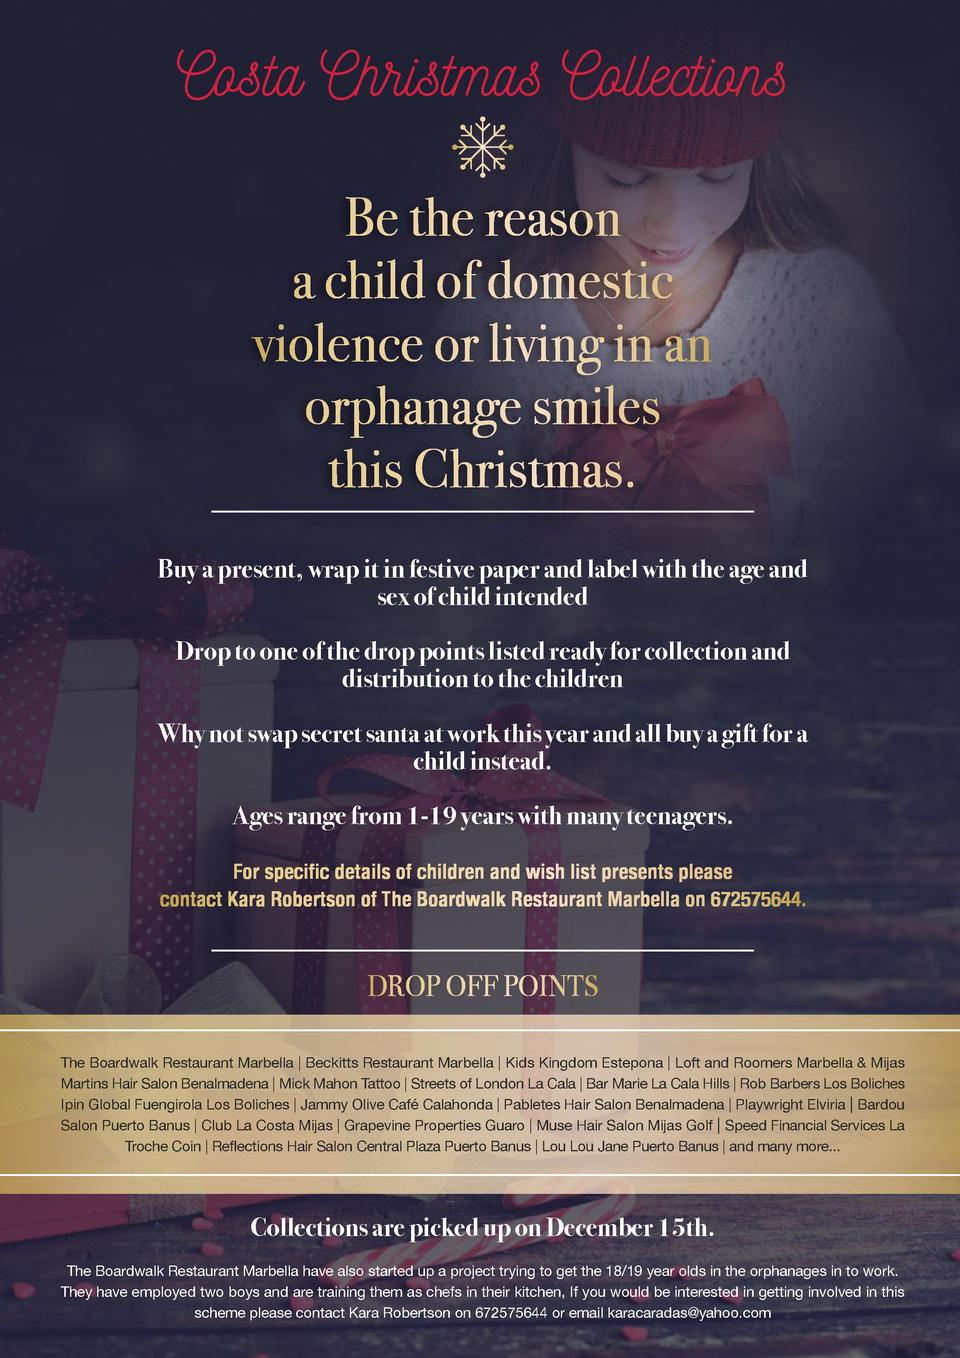 Costa Christmas Collections Be the reason a child of domestic violence or living in an orphanage smiles this Christmas. Bu...